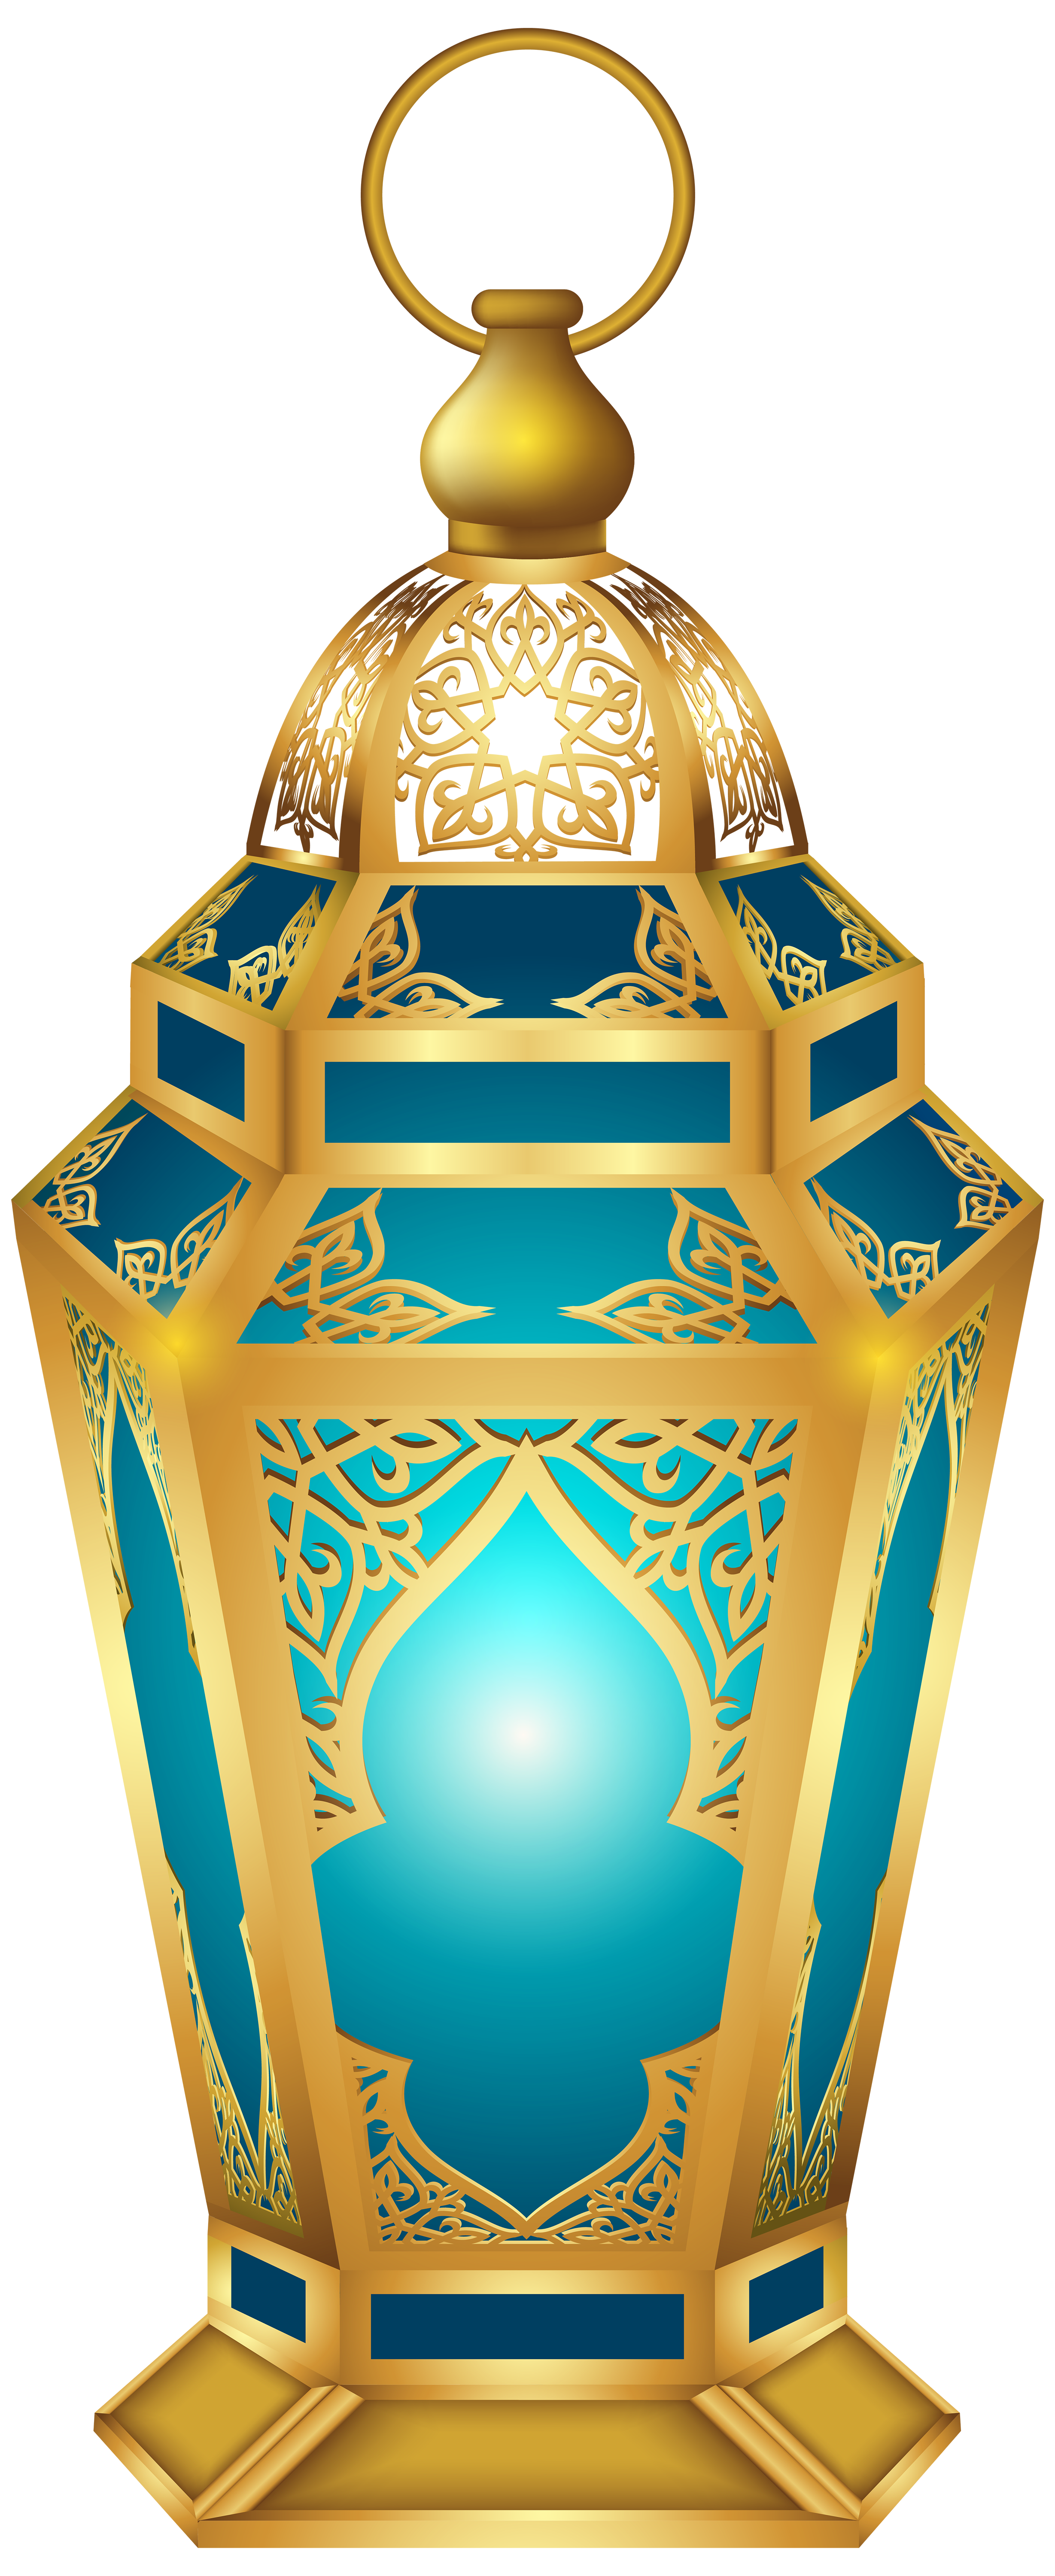 Beautiful India Lantern Png Clip Art Png Image Gallery Yopriceville High Quality Images And Transparent Png F Gold Clipart Frames Frame Light Blue Lantern